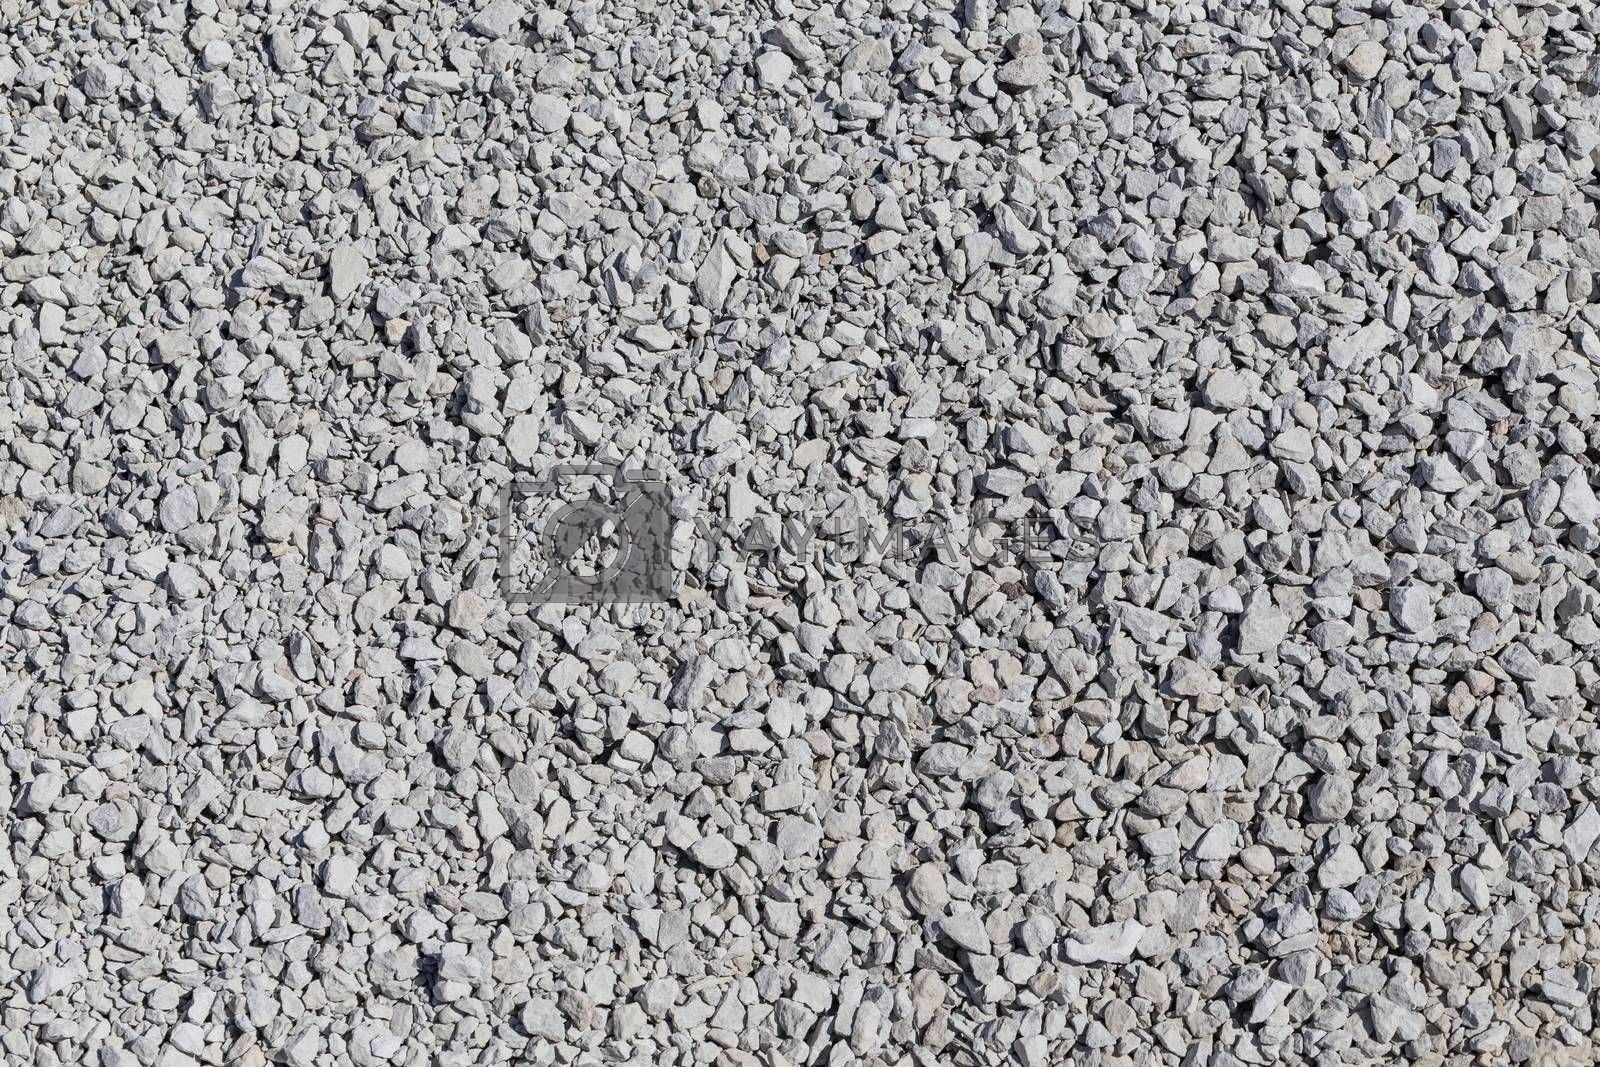 Royalty free image of Crushed gravel texture by RTsubin